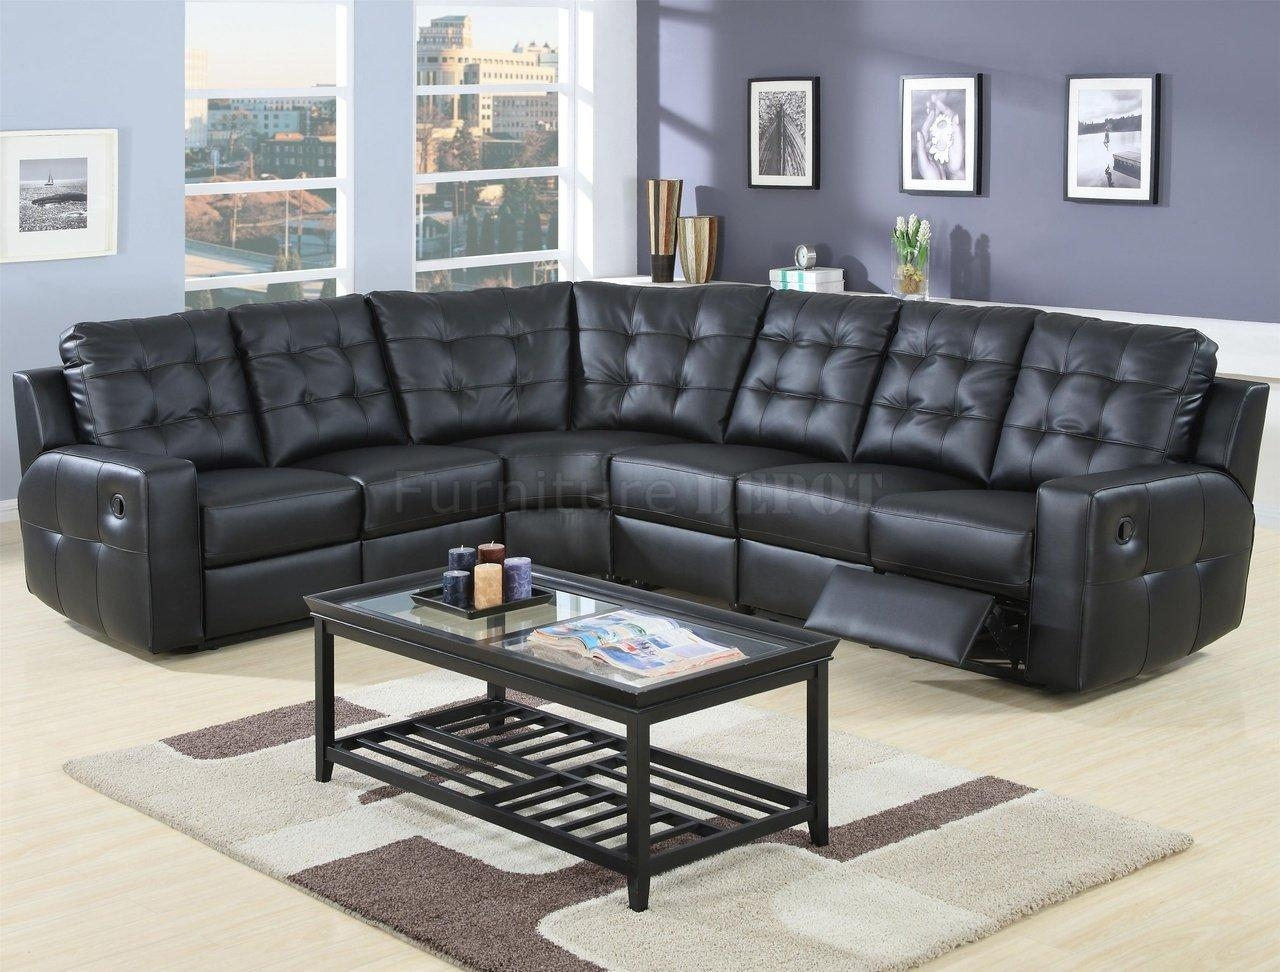 Furniture: Incredible Style Sectional Reclining Sofas For Your For Curved Sectional Sofa With Recliner (View 5 of 15)